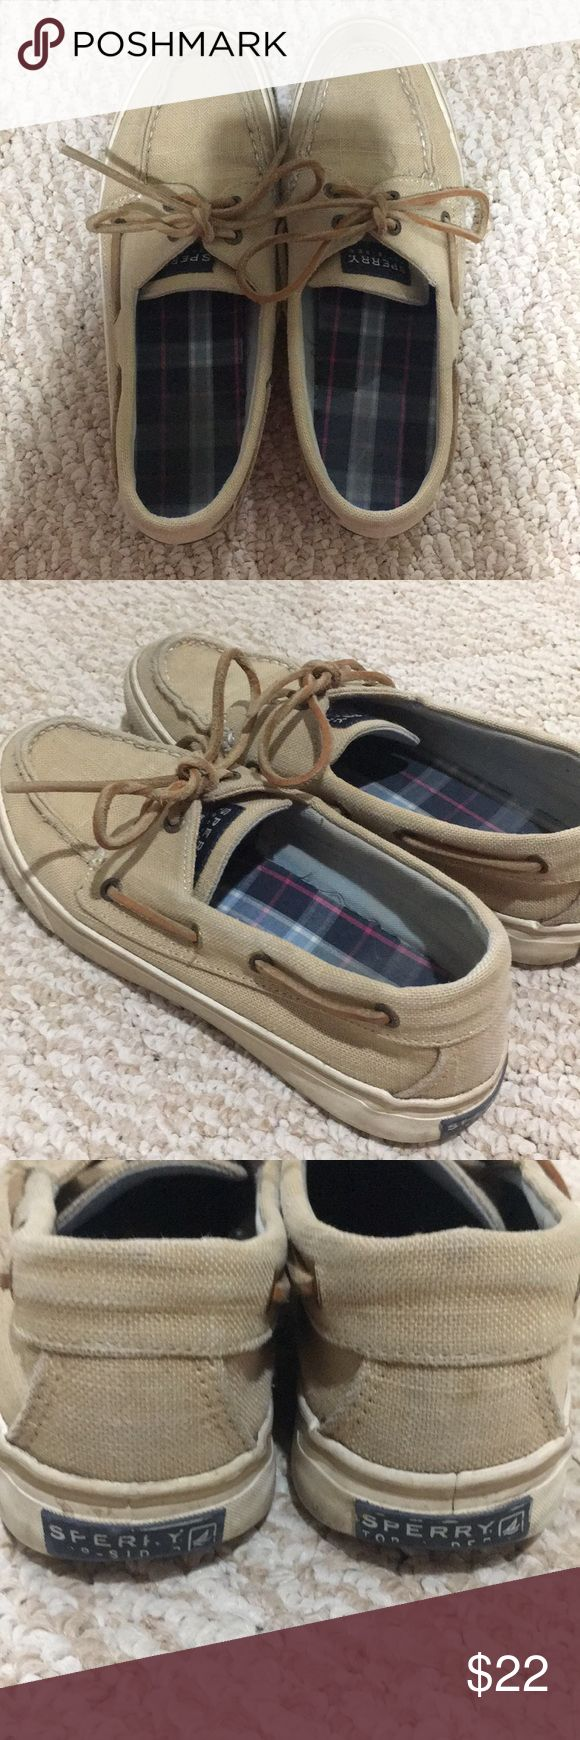 Tan Sperry Boat Shoes Tan sperrys, women's size 7.5 (US), slide on shoes with laces (leather laces), worn many times but still in good condition, small stain on front of right shoe but not noticeable while wearing, accepting offers, will lightly clean before shipping off! Sperry Shoes Sneakers